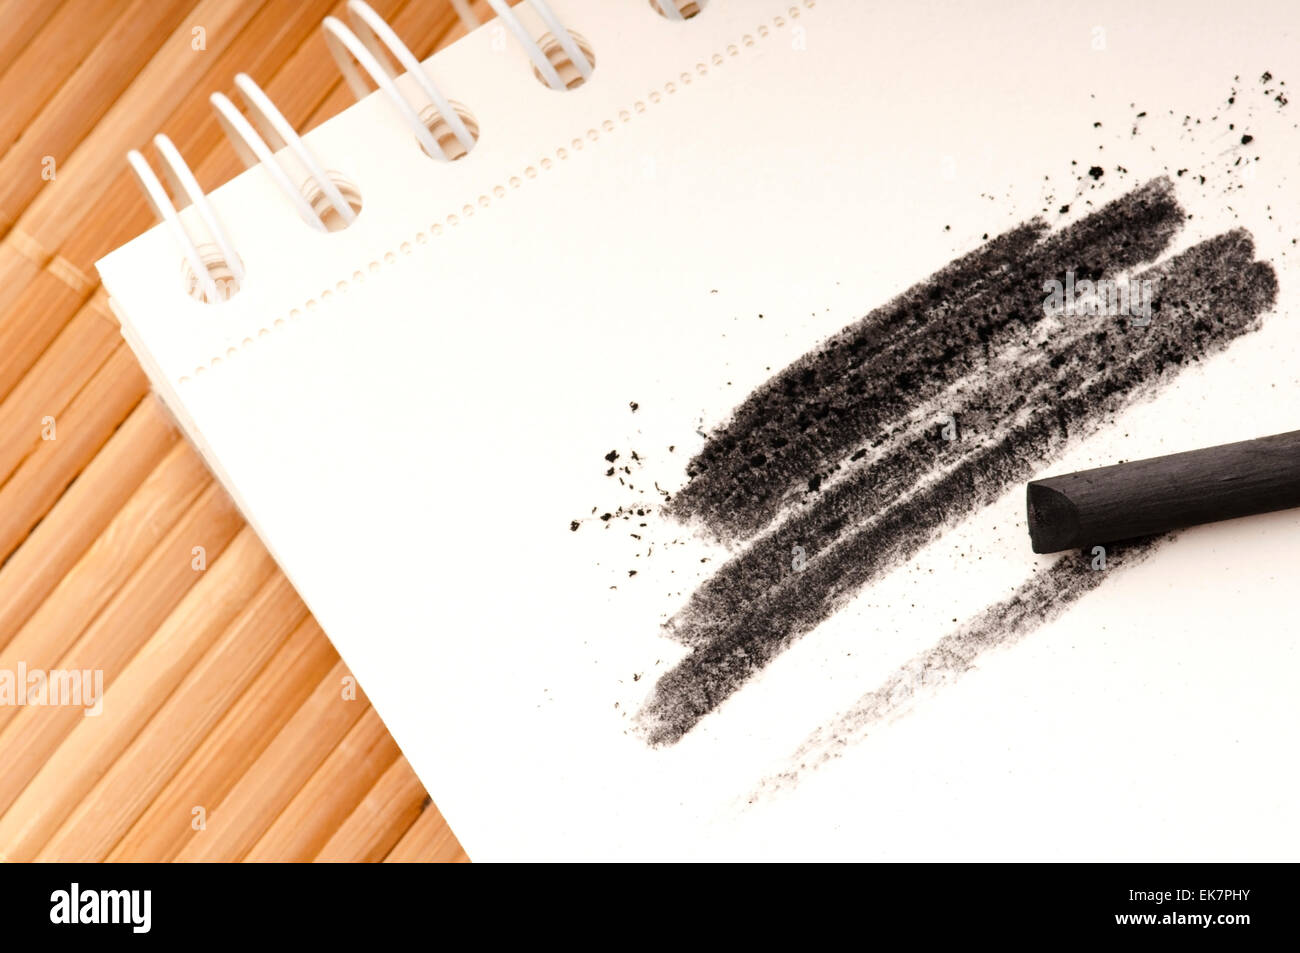 Black charcoal with smudge - Stock Image